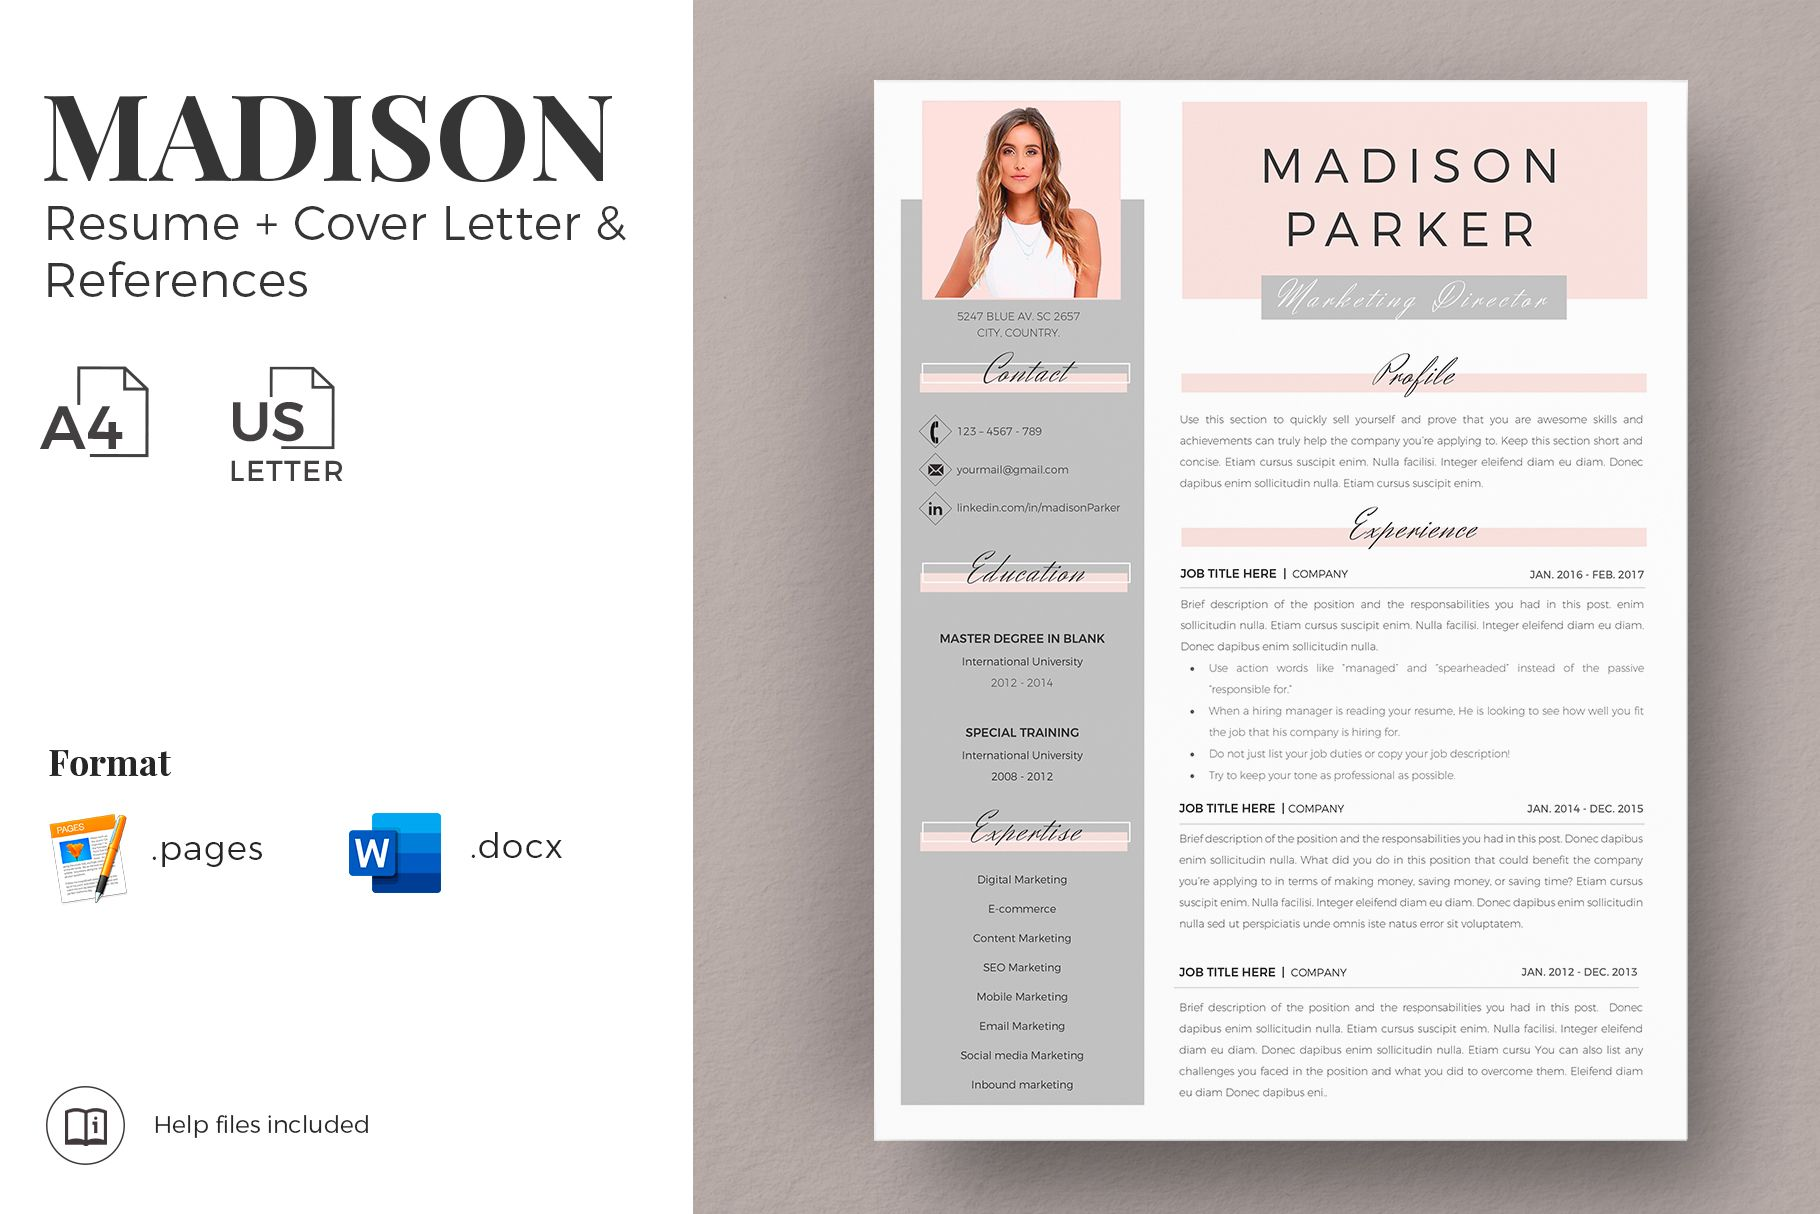 Creative Resume Templates For Ms Word And Mac Pages Professional Resume Templates And Matching Cover Lett Resume Design Creative Resume Resume Design Template